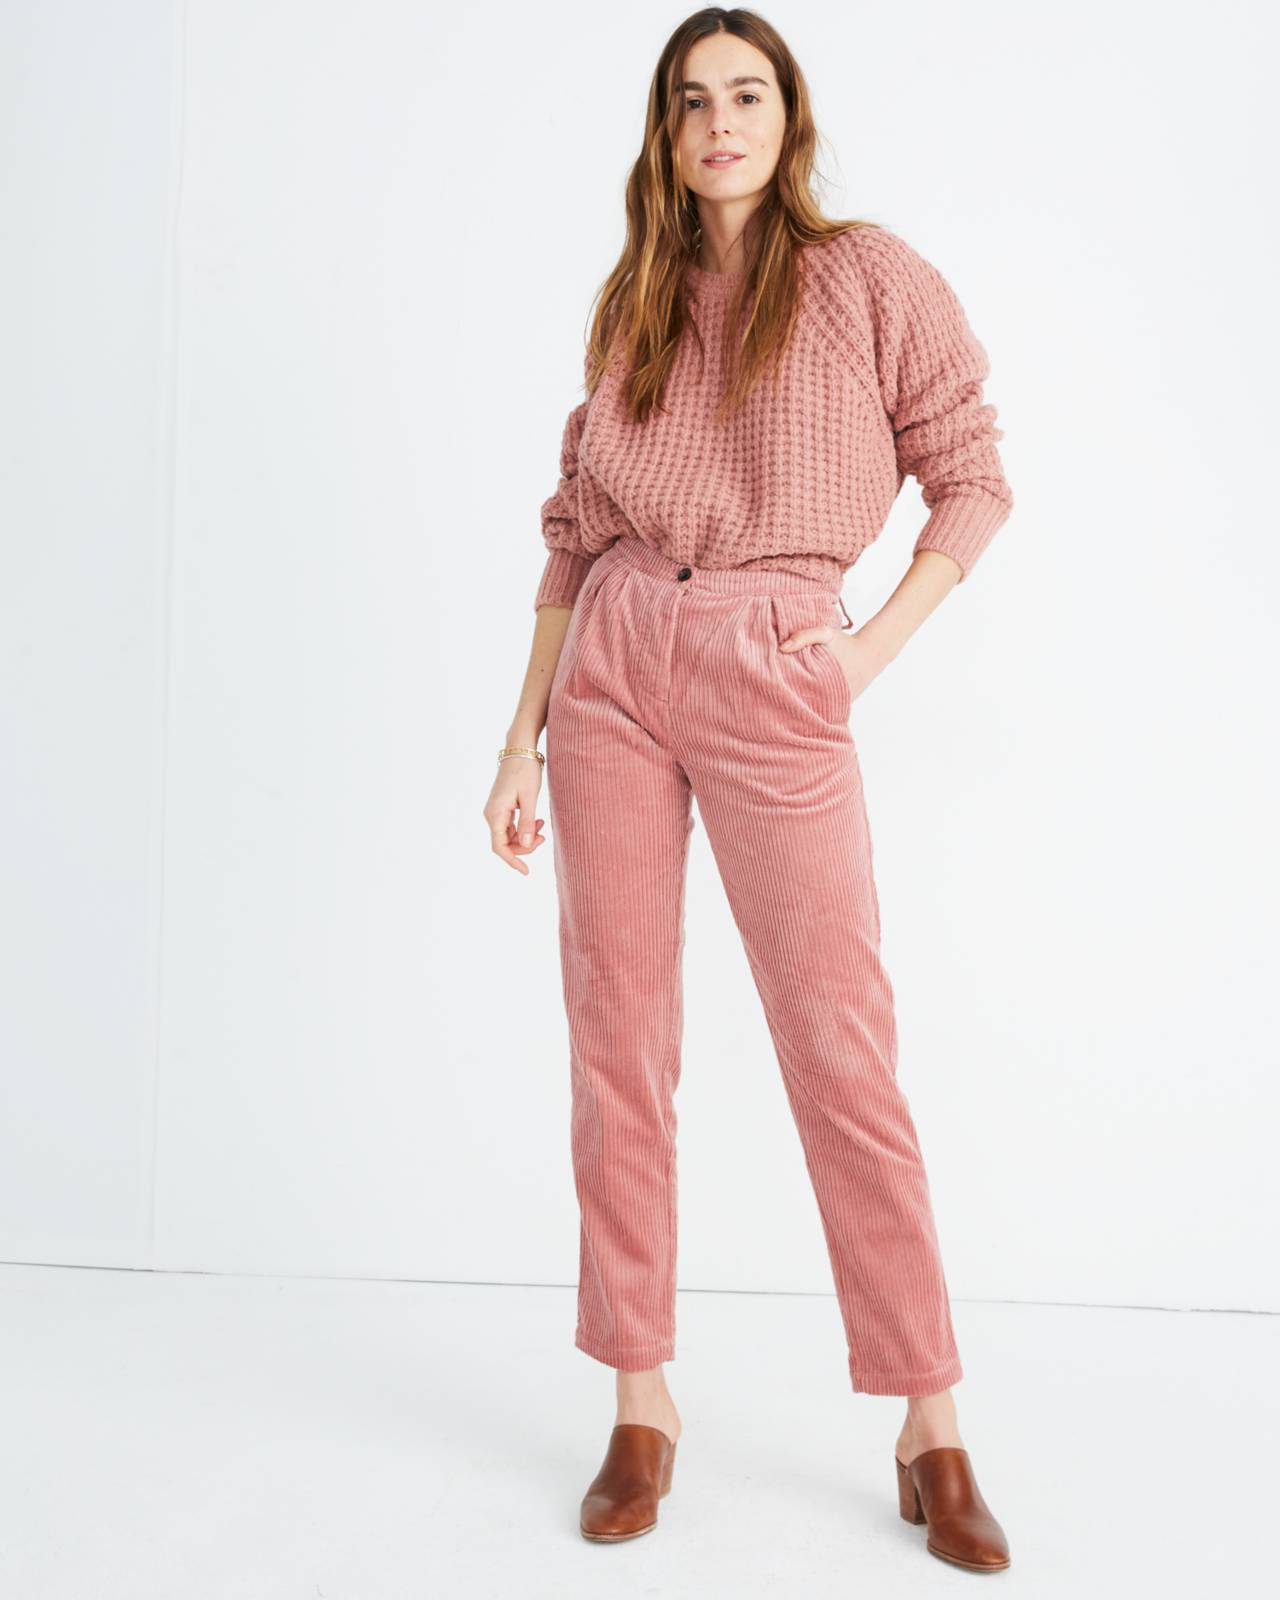 Sess�n™ Corduroy Rocco Pants in misty image 1